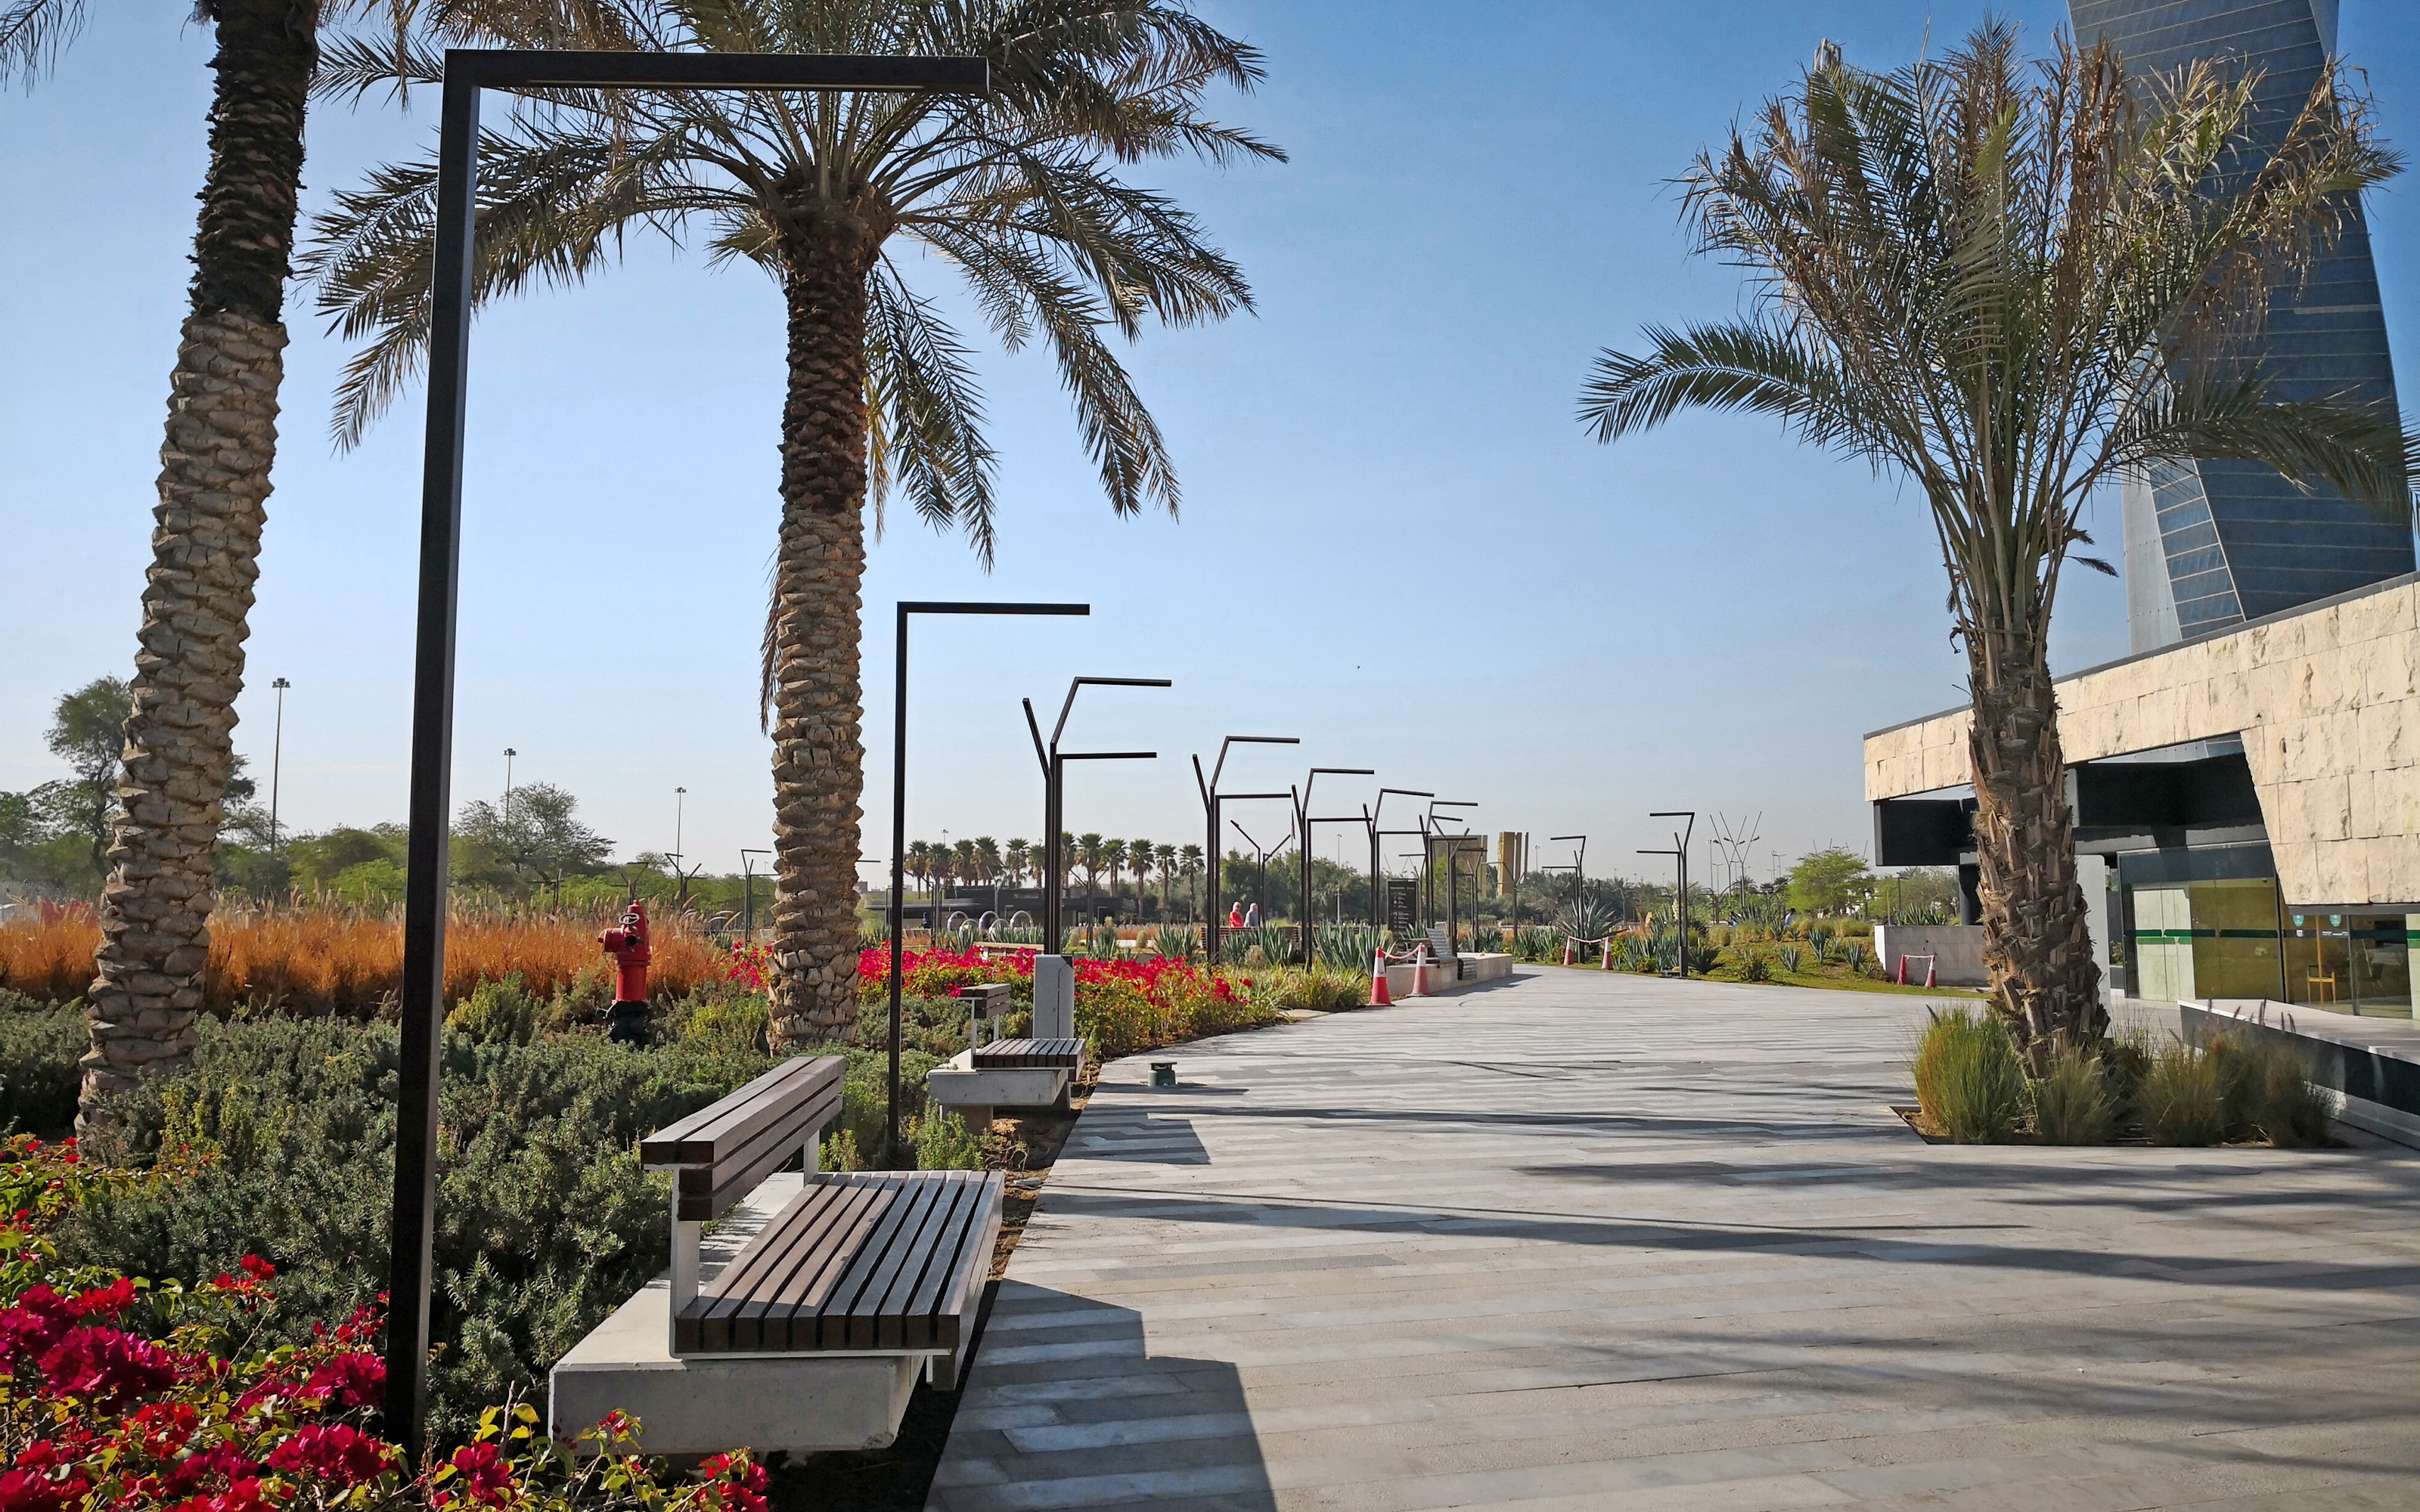 Walkways with benches, plant beds and palm trees in a park